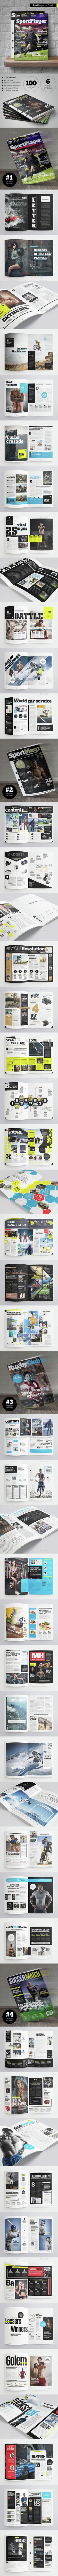 Sport Magazine Bundle (4 in 1) Templates InDesign INDD. Download here: http://graphicriver.net/item/sport-magazine-bundle-4-in-1/15231722?ref=ksioks